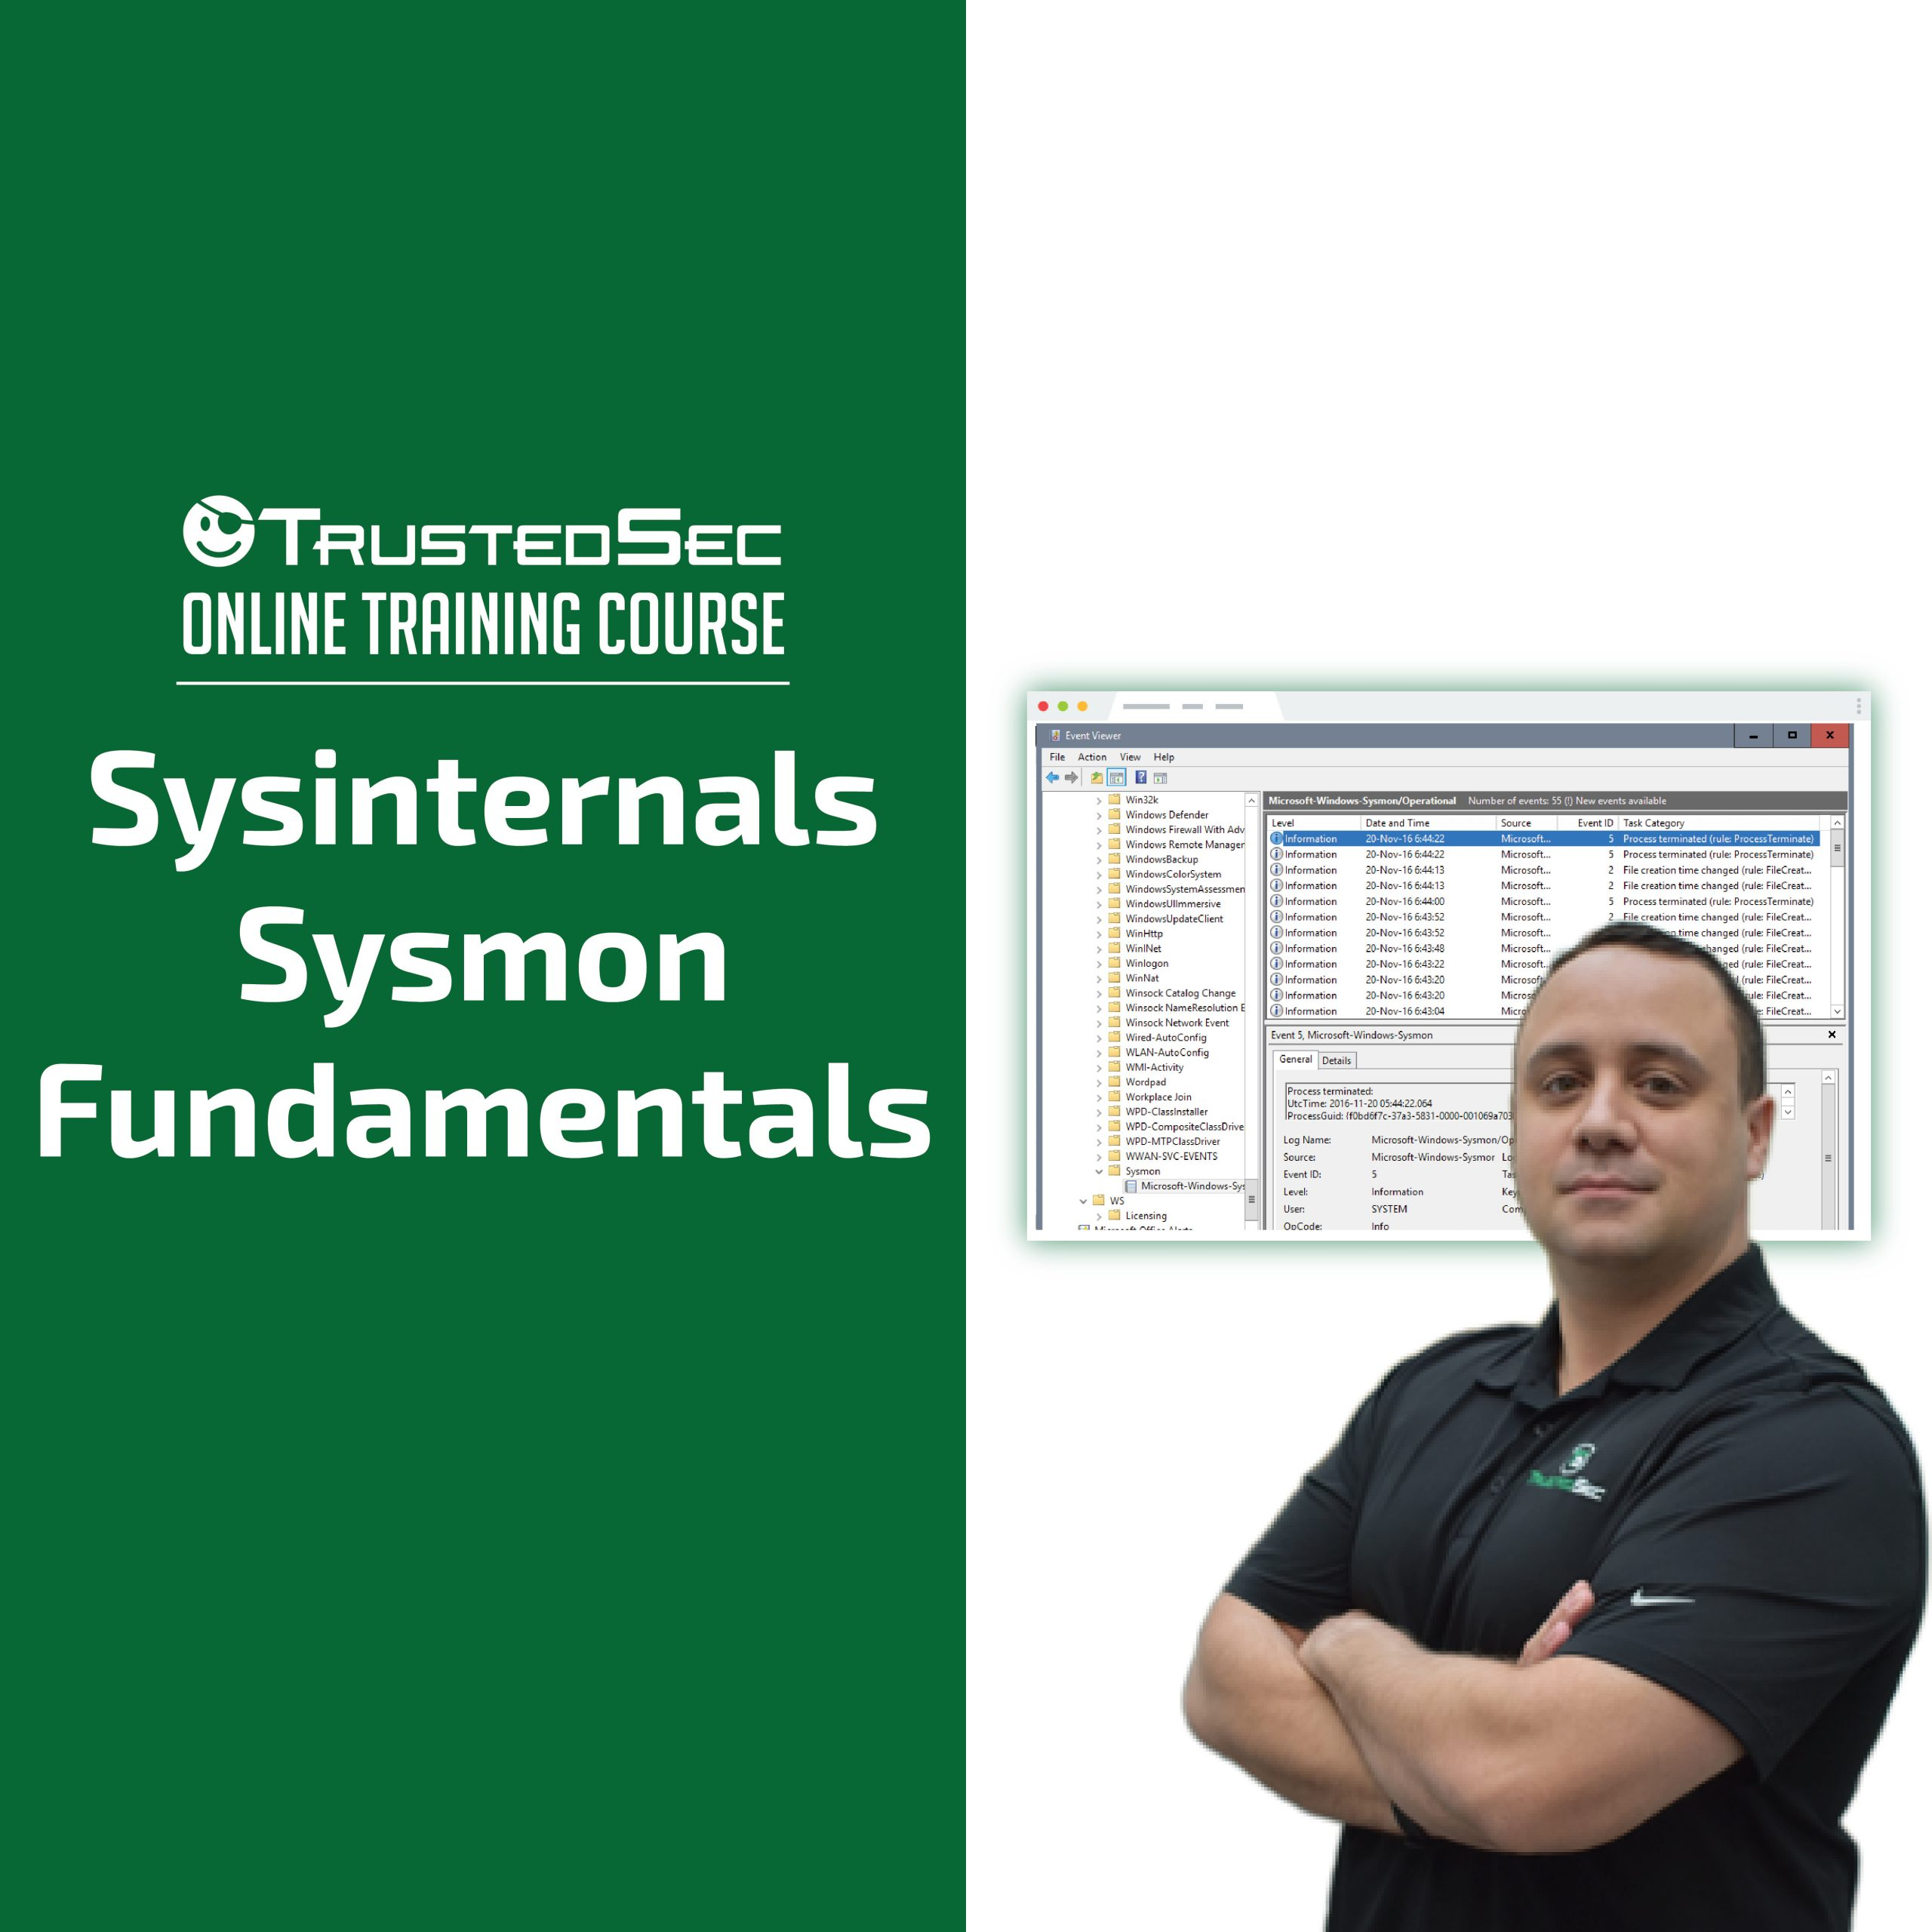 https://www.trustedsec.com/wp-content/uploads/2020/04/040320-Training-Visual-Sysmon-Square-scaled.jpg